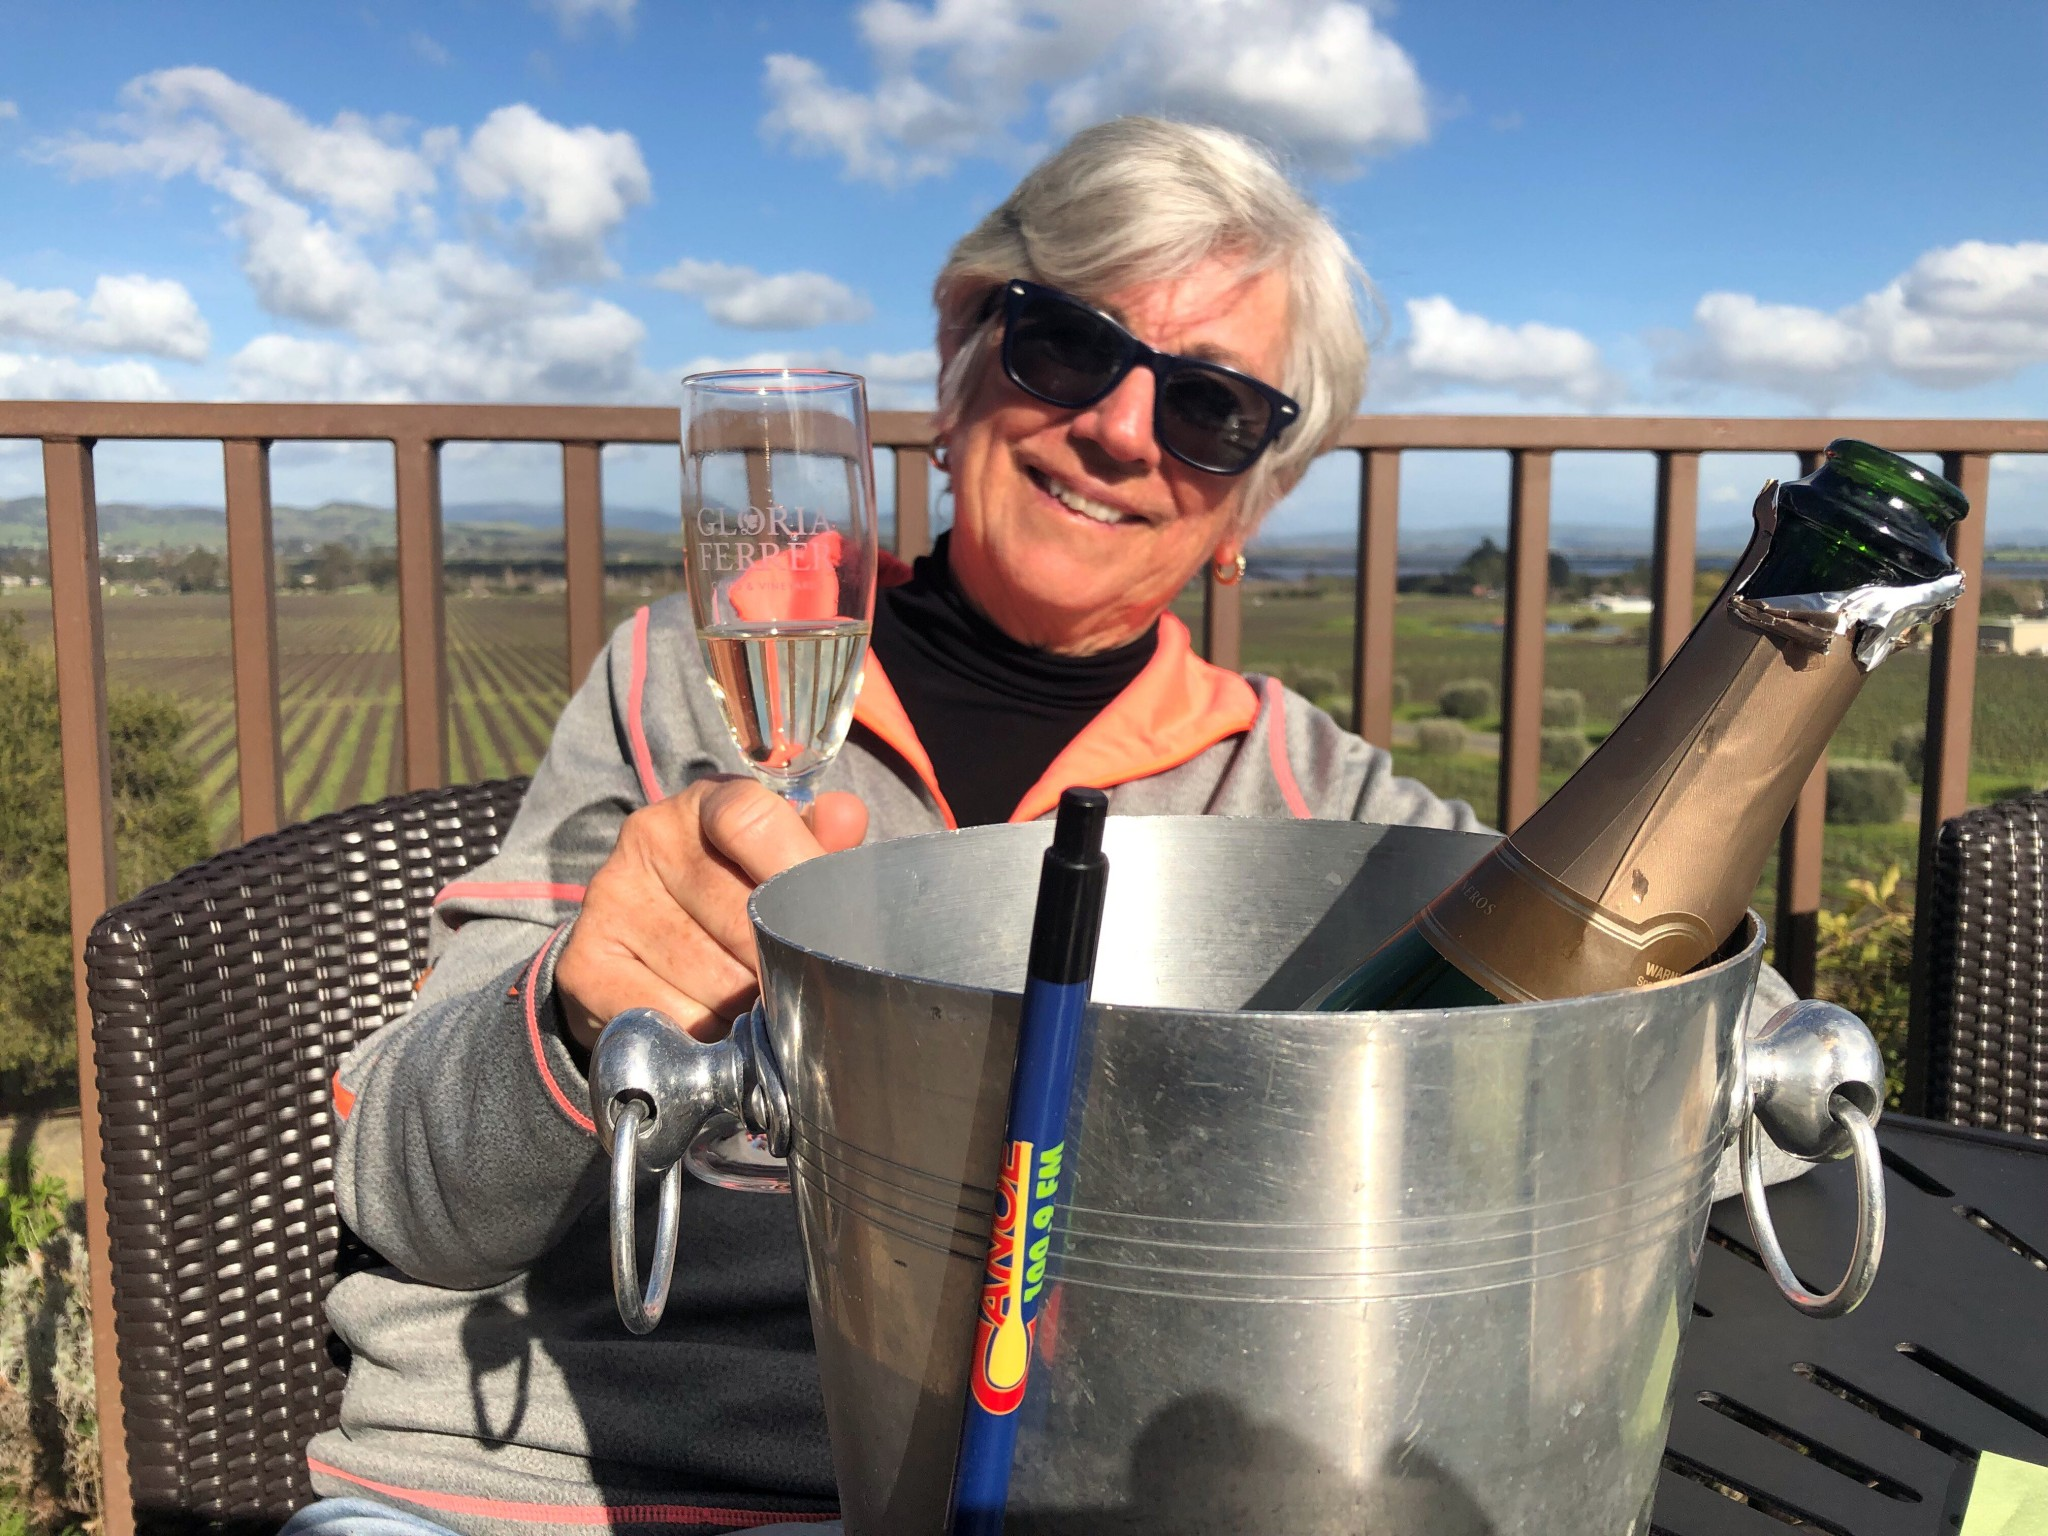 The Canoe FM pen made it to Gloria Ferrer Winery in Sonoma, California with Canoe FM listener, Lois Maxwell